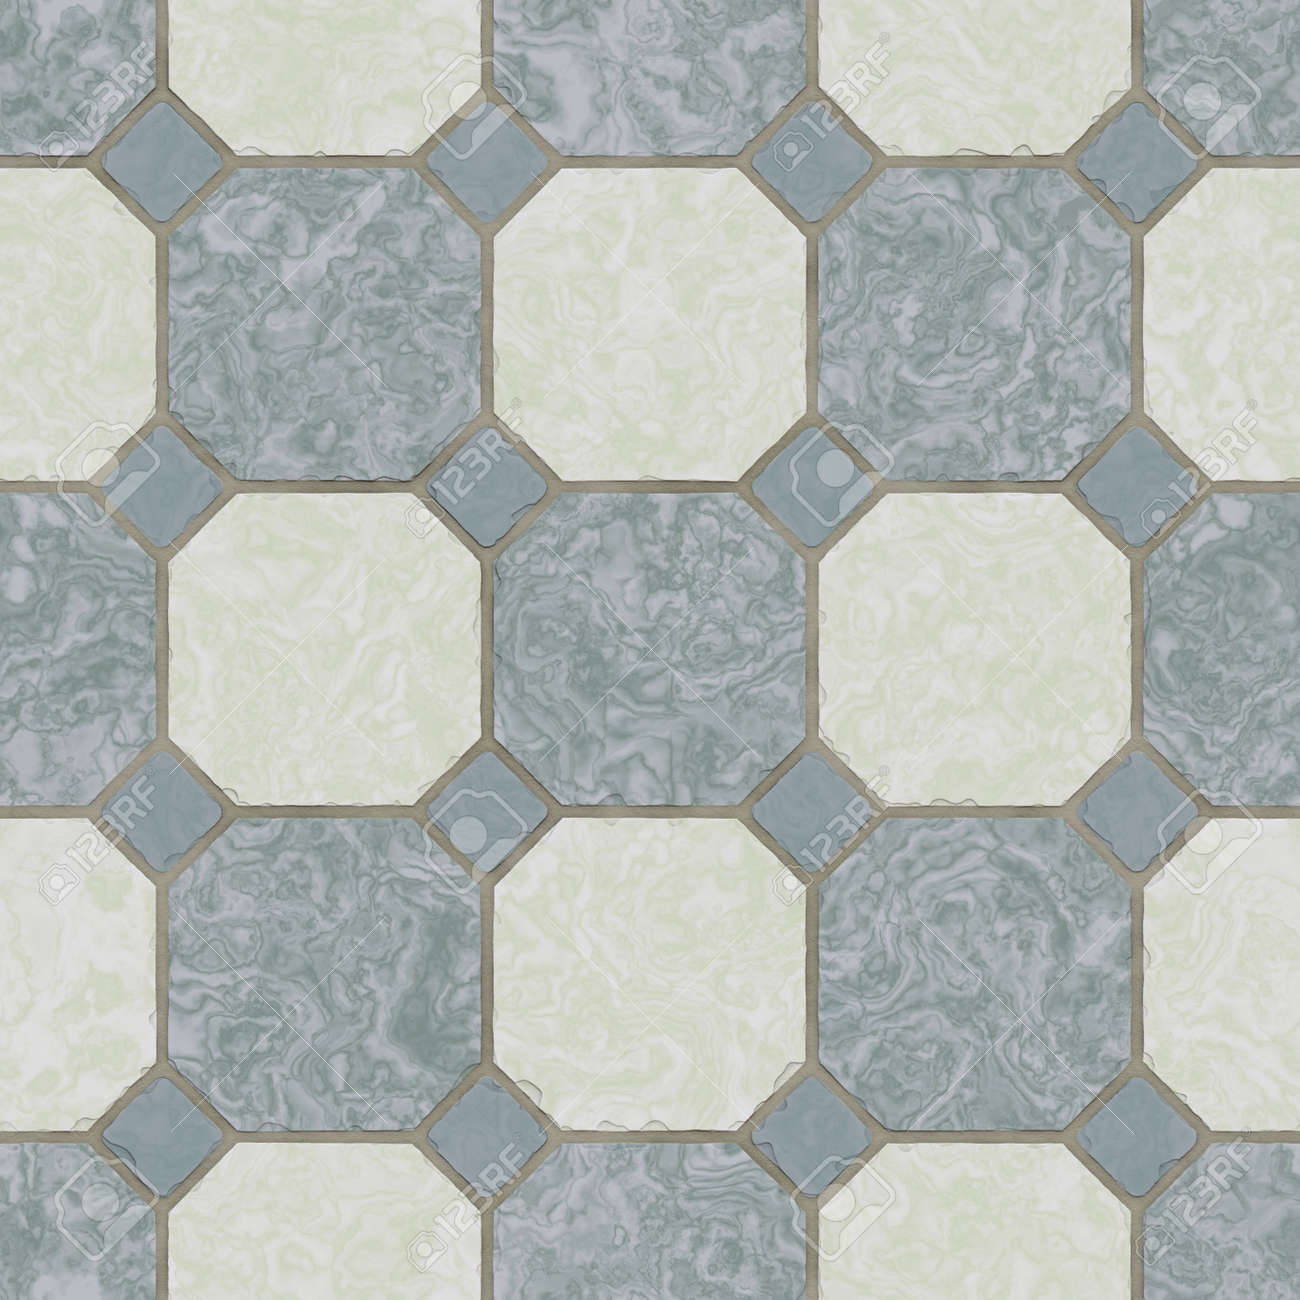 Kitchen Floor Tiles Texture